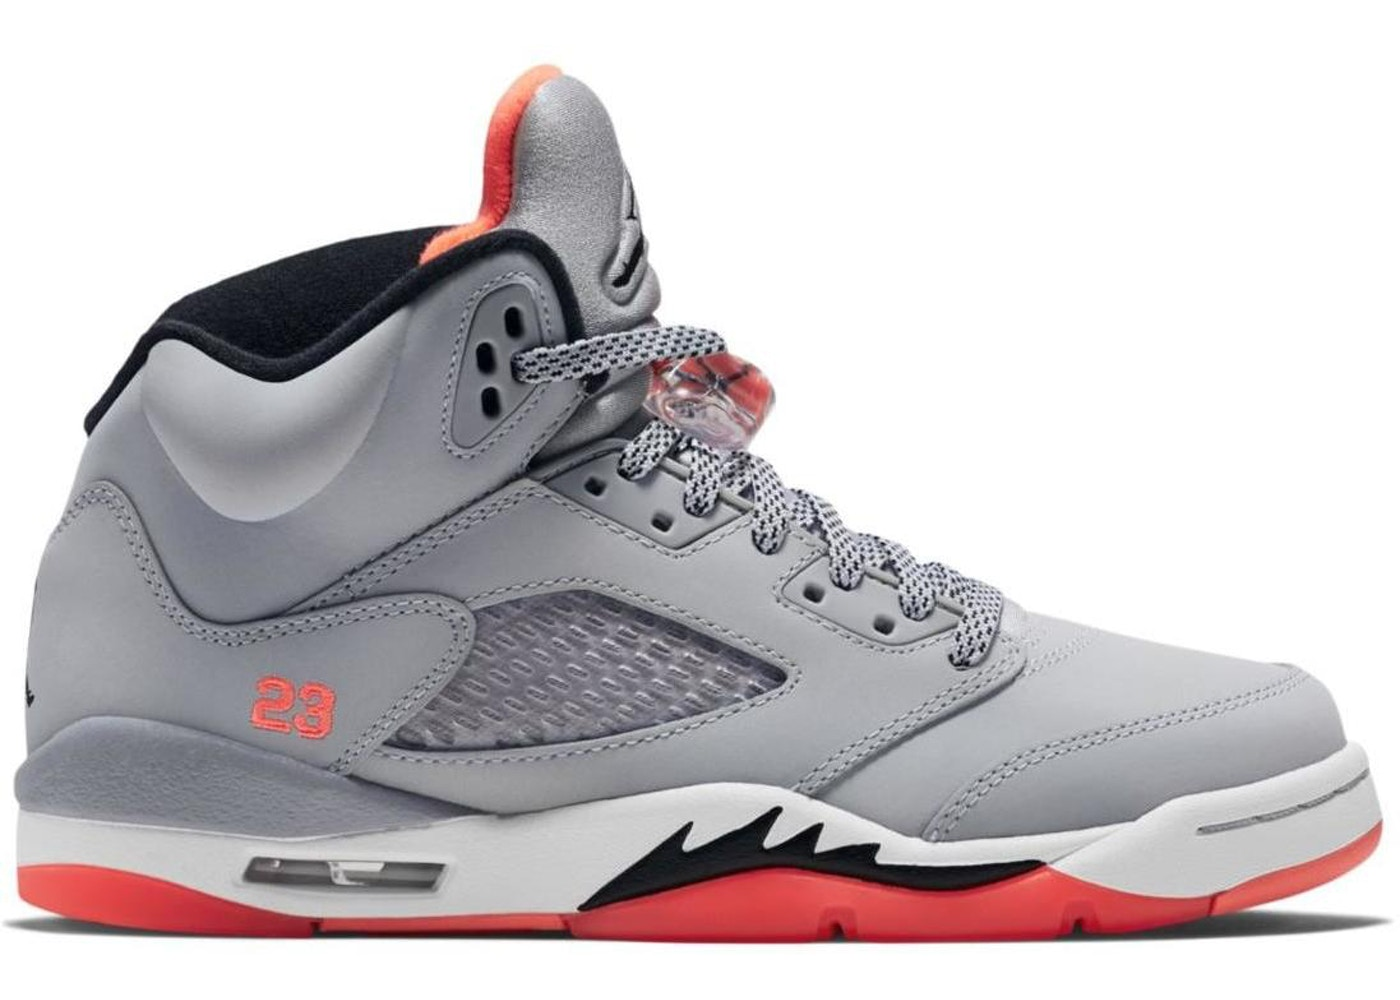 detailed look 0f023 db242 Jordan 5 Retro Hot Lava (GS)